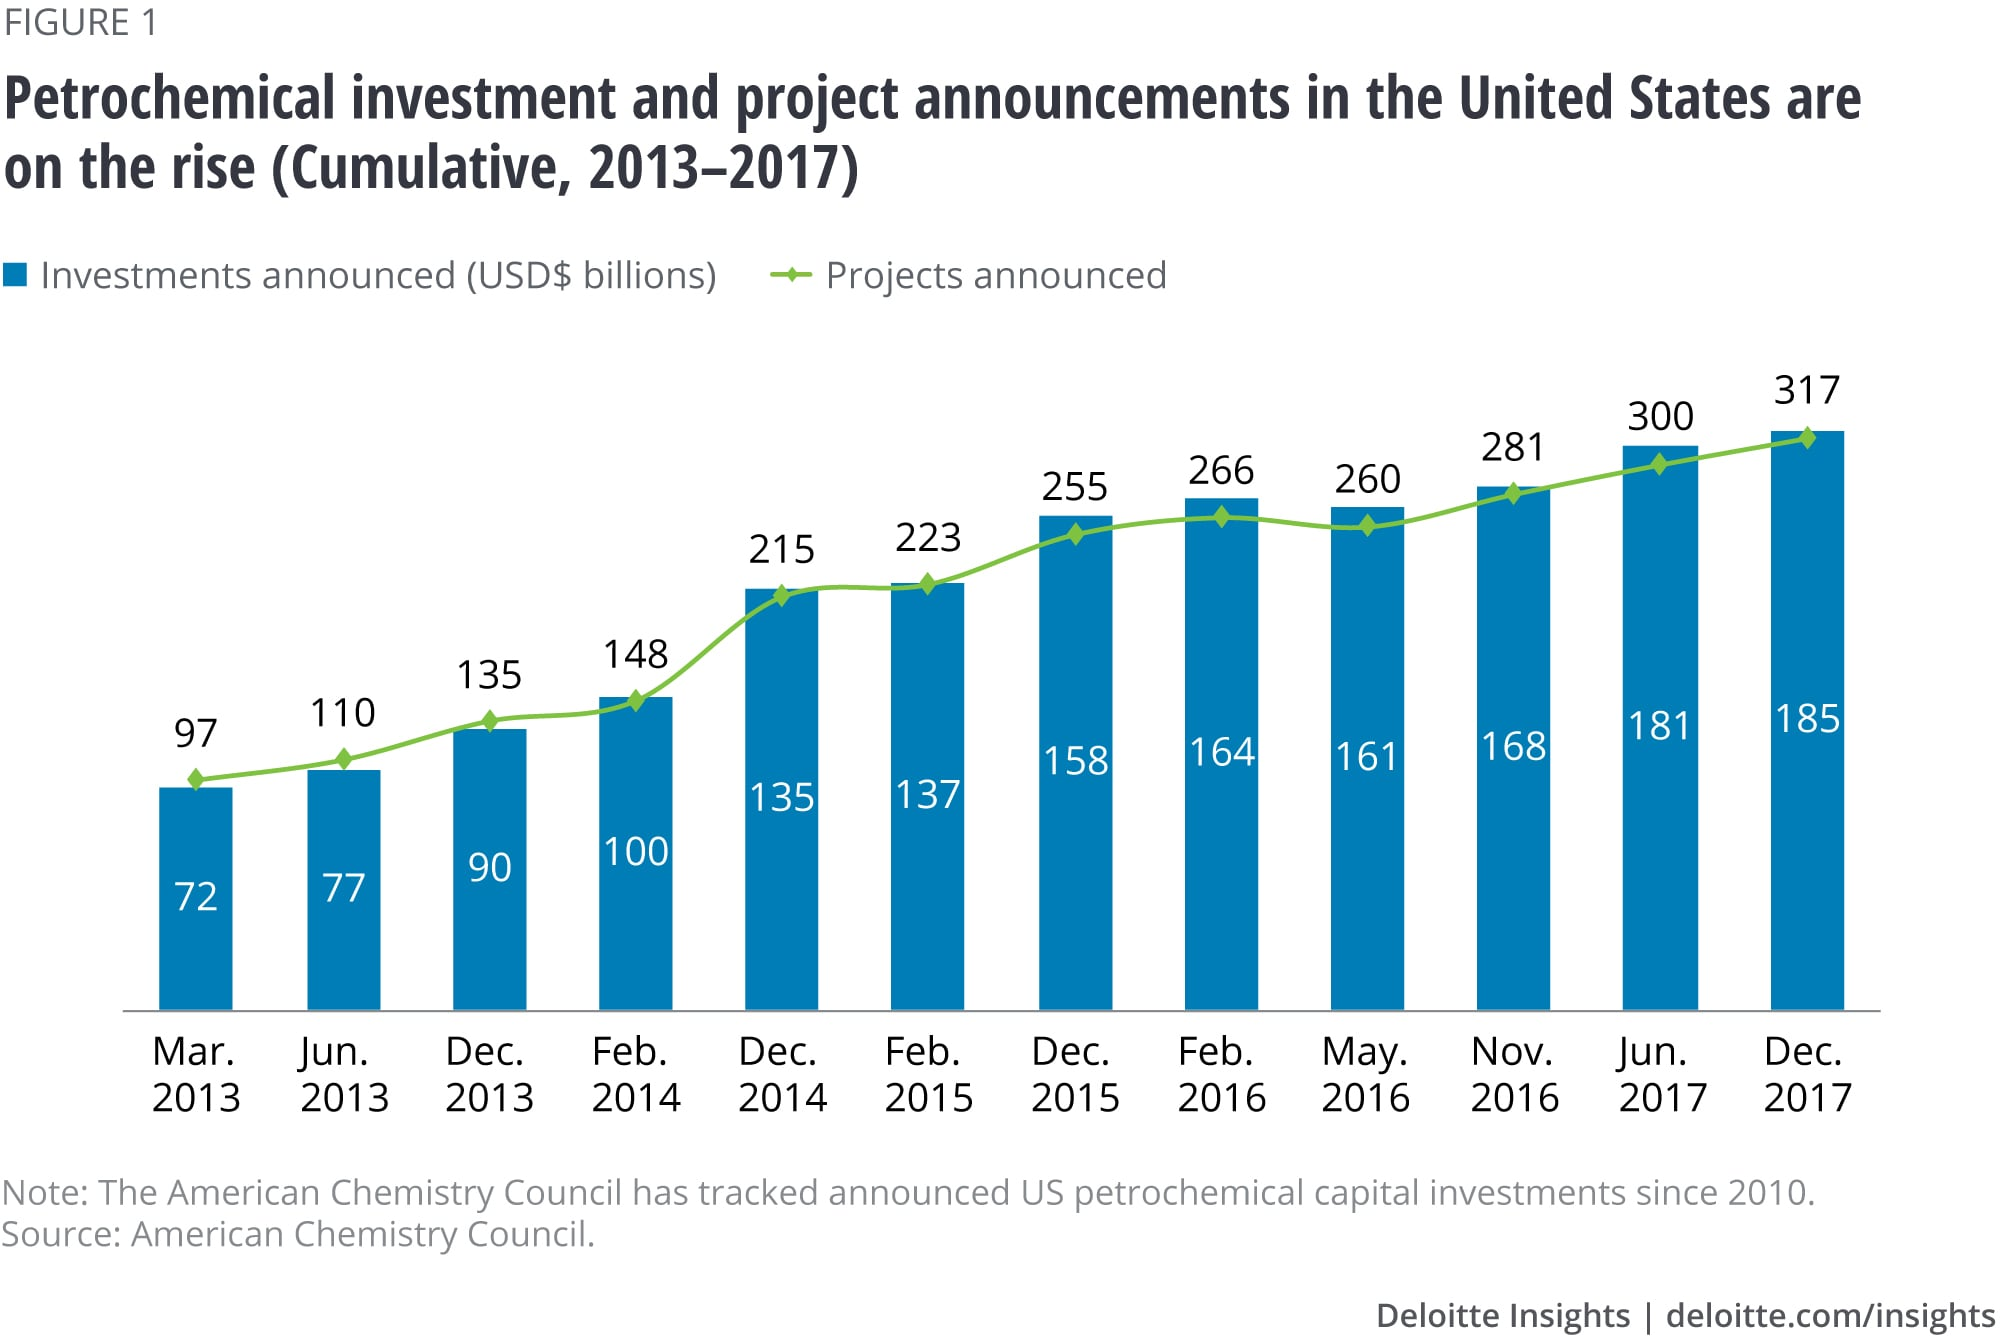 The Next Wave of Petrochemical Investments in the US